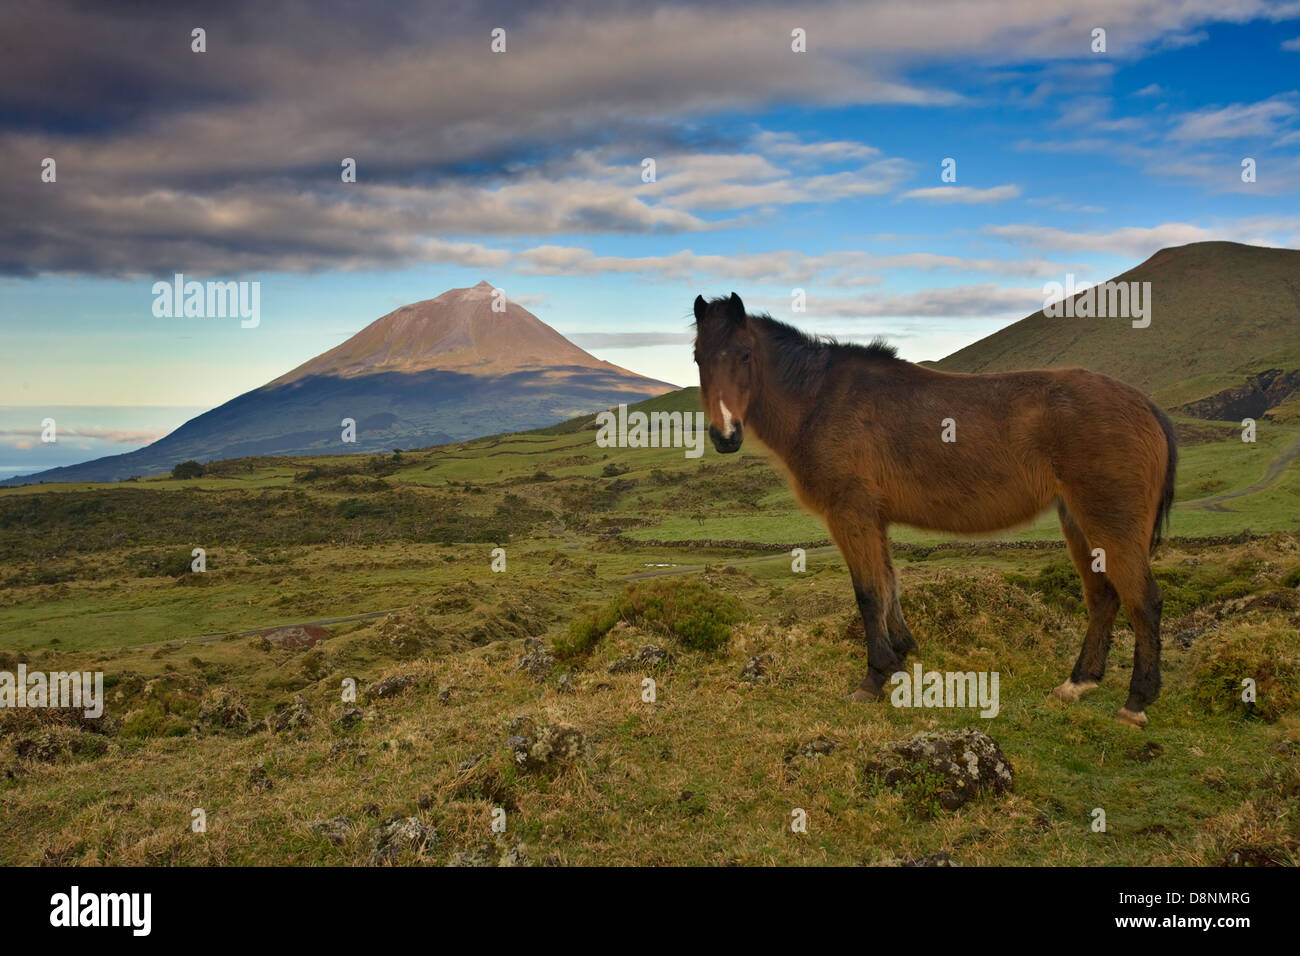 Wild horse at sunrise with Pico Mountain in the horizon - Pico Island - Azores - Stock Image